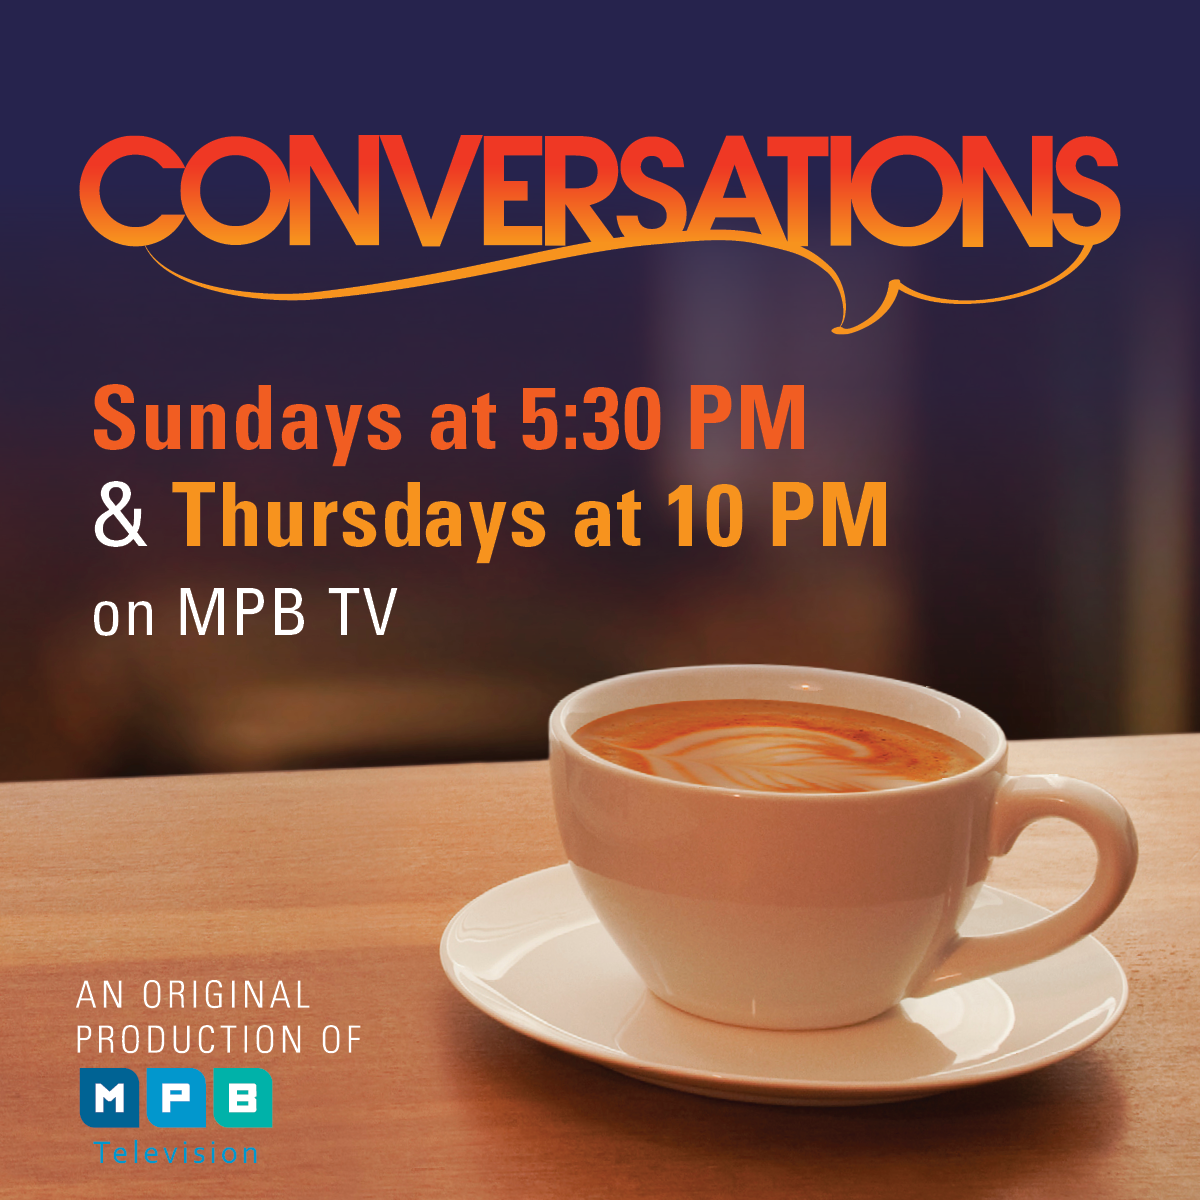 Watch New episodes of Conversations, Sundays at 5:30PM on MPB TV.